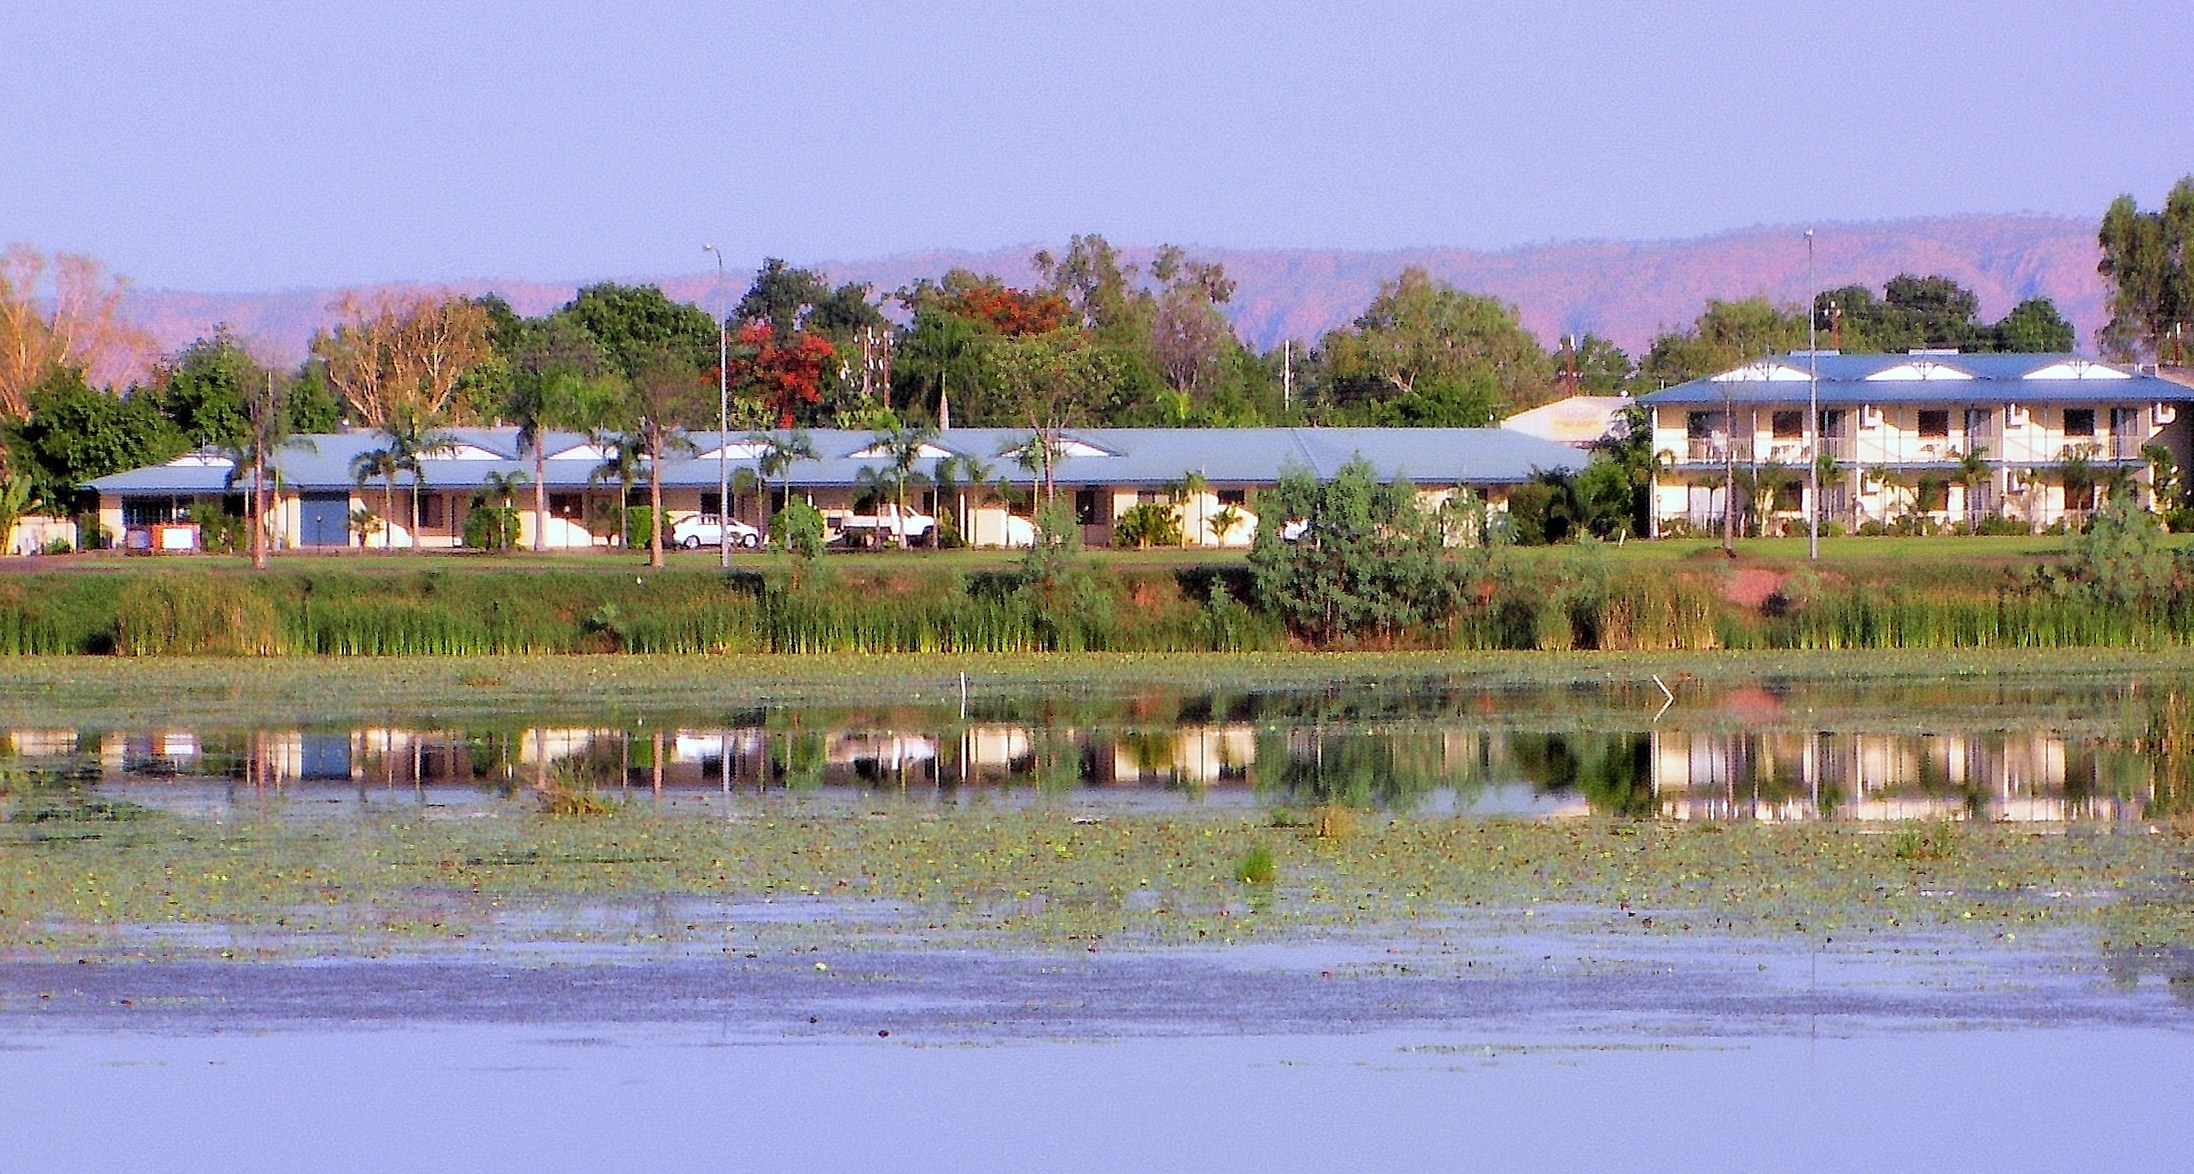 View of hotel next to Lily Creek Lagoon